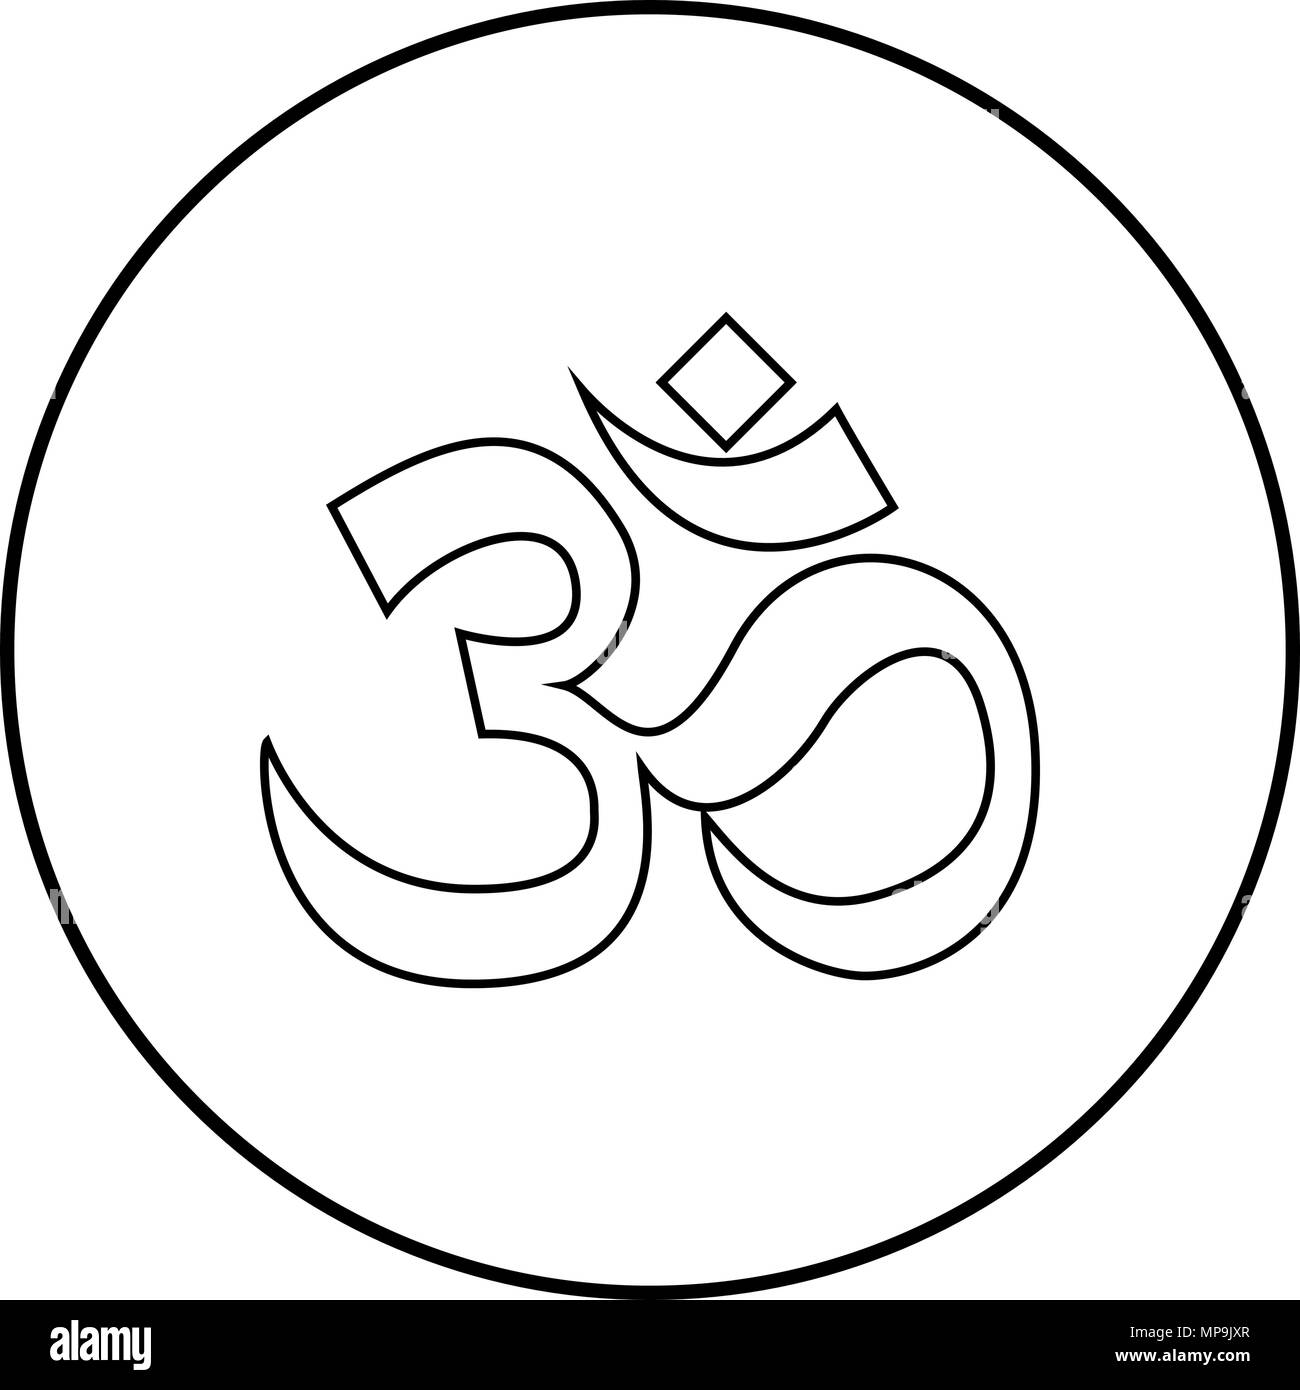 Om Sign Black And White Stock Photos Images Alamy